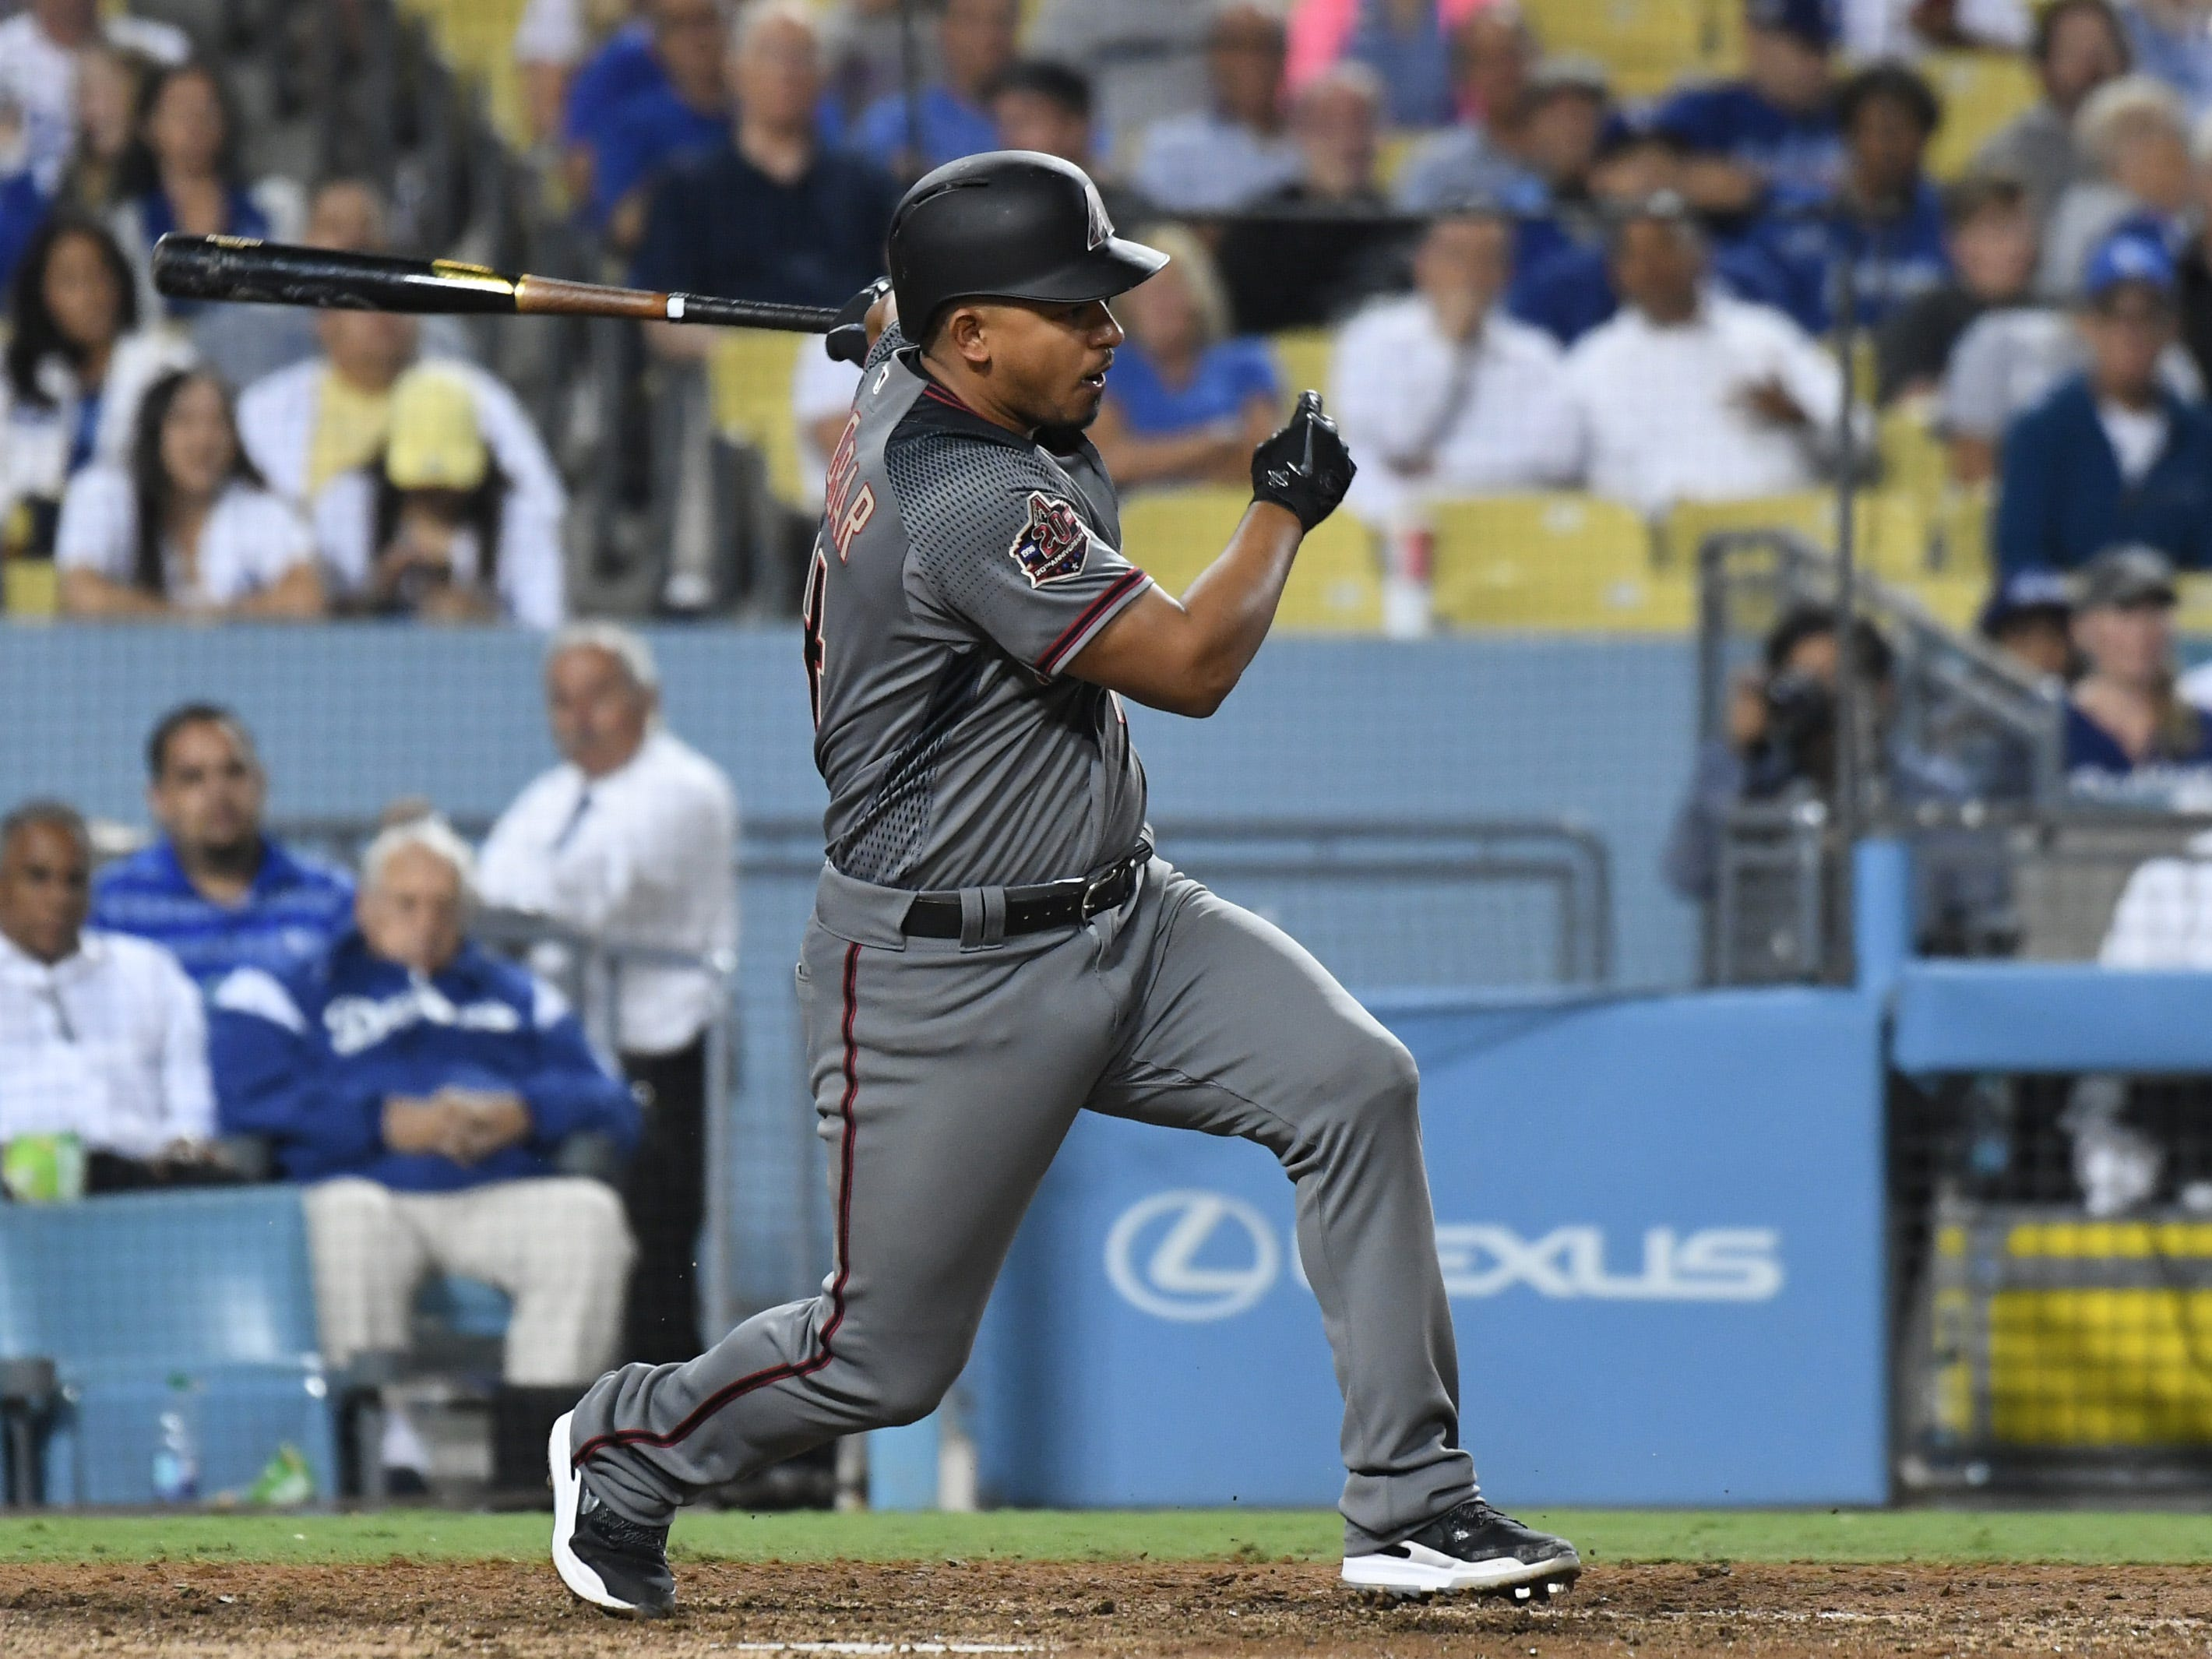 Aug 30, 2018; Los Angeles, CA, USA; Arizona Diamondbacks third baseman Eduardo Escobar (14) hits a single against the Los Angeles Dodgers in the eighth inning at Dodger Stadium. Mandatory Credit: Richard Mackson-USA TODAY Sports